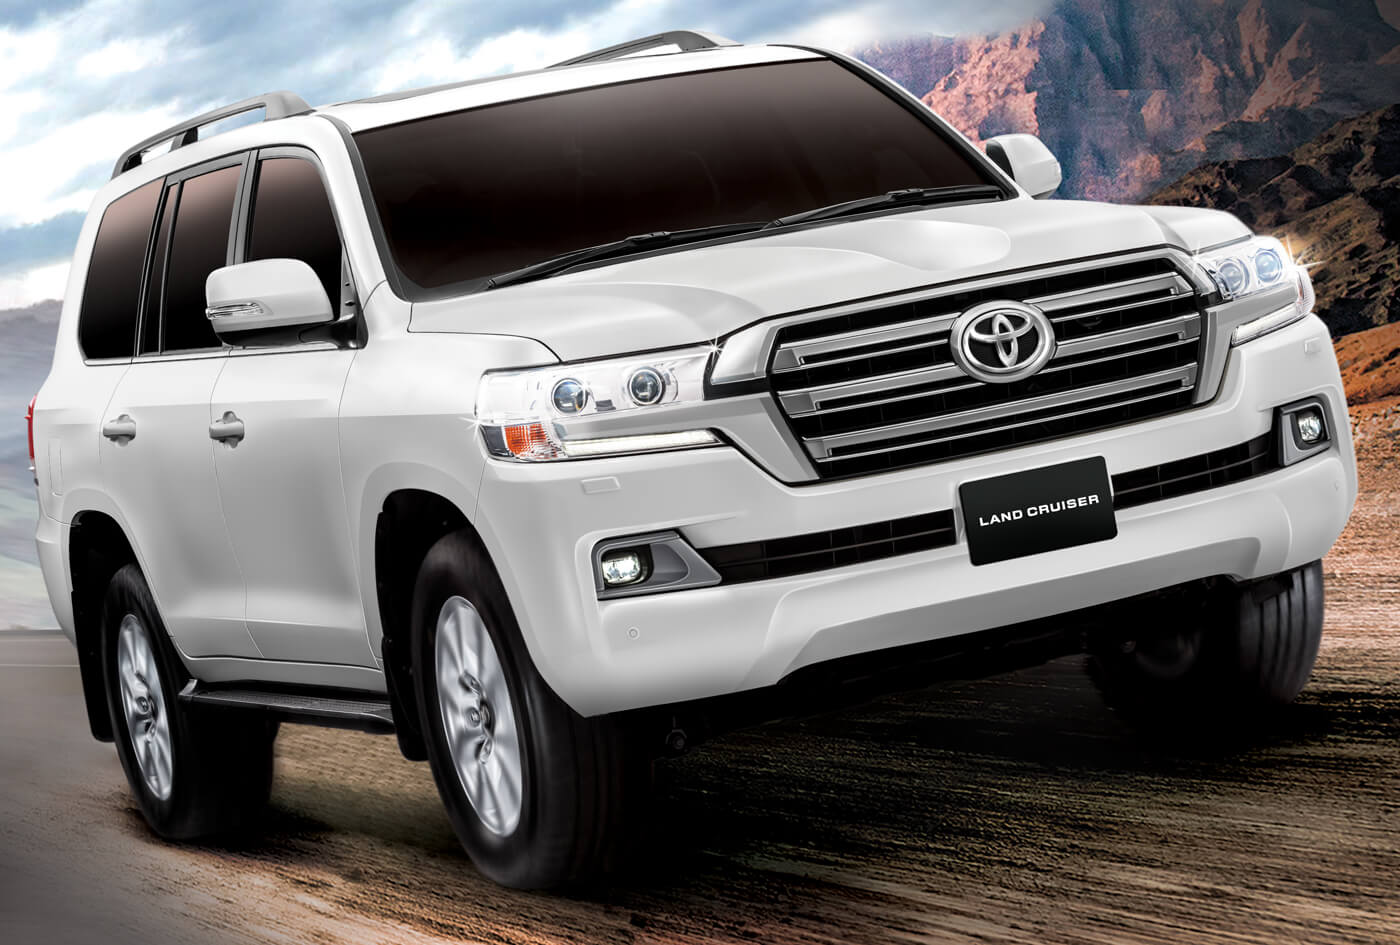 Toyota Land Cruiser 2020 Prices in Pakistan Specifications, Features